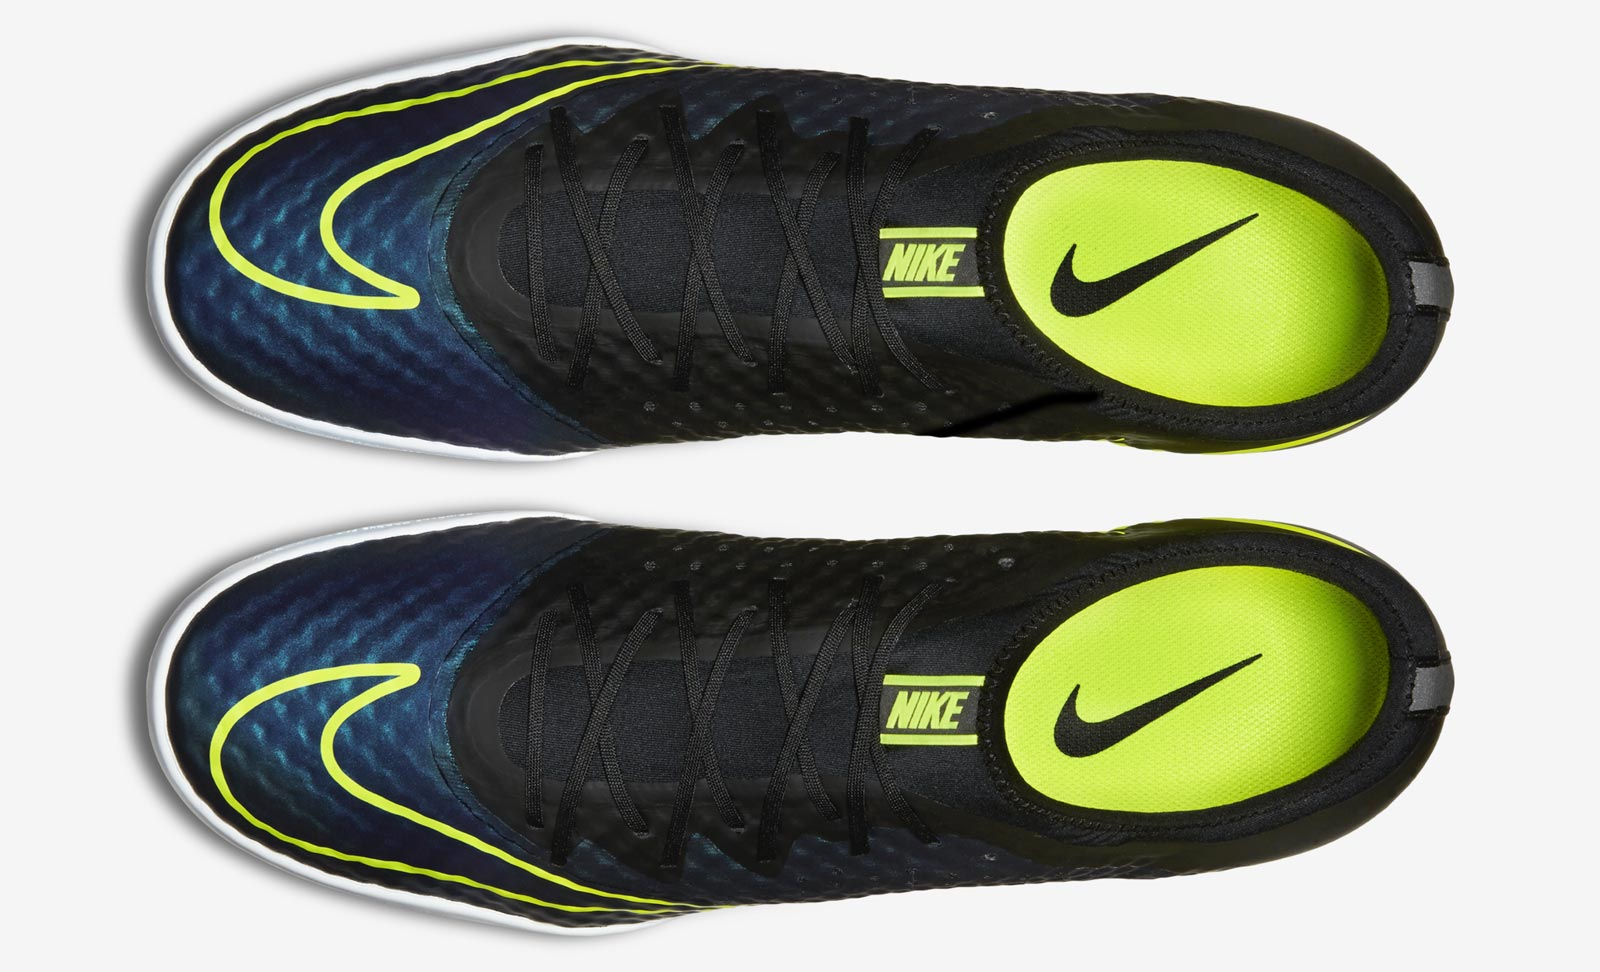 blue nike mercurial x finale 2015 boots released footy. Black Bedroom Furniture Sets. Home Design Ideas